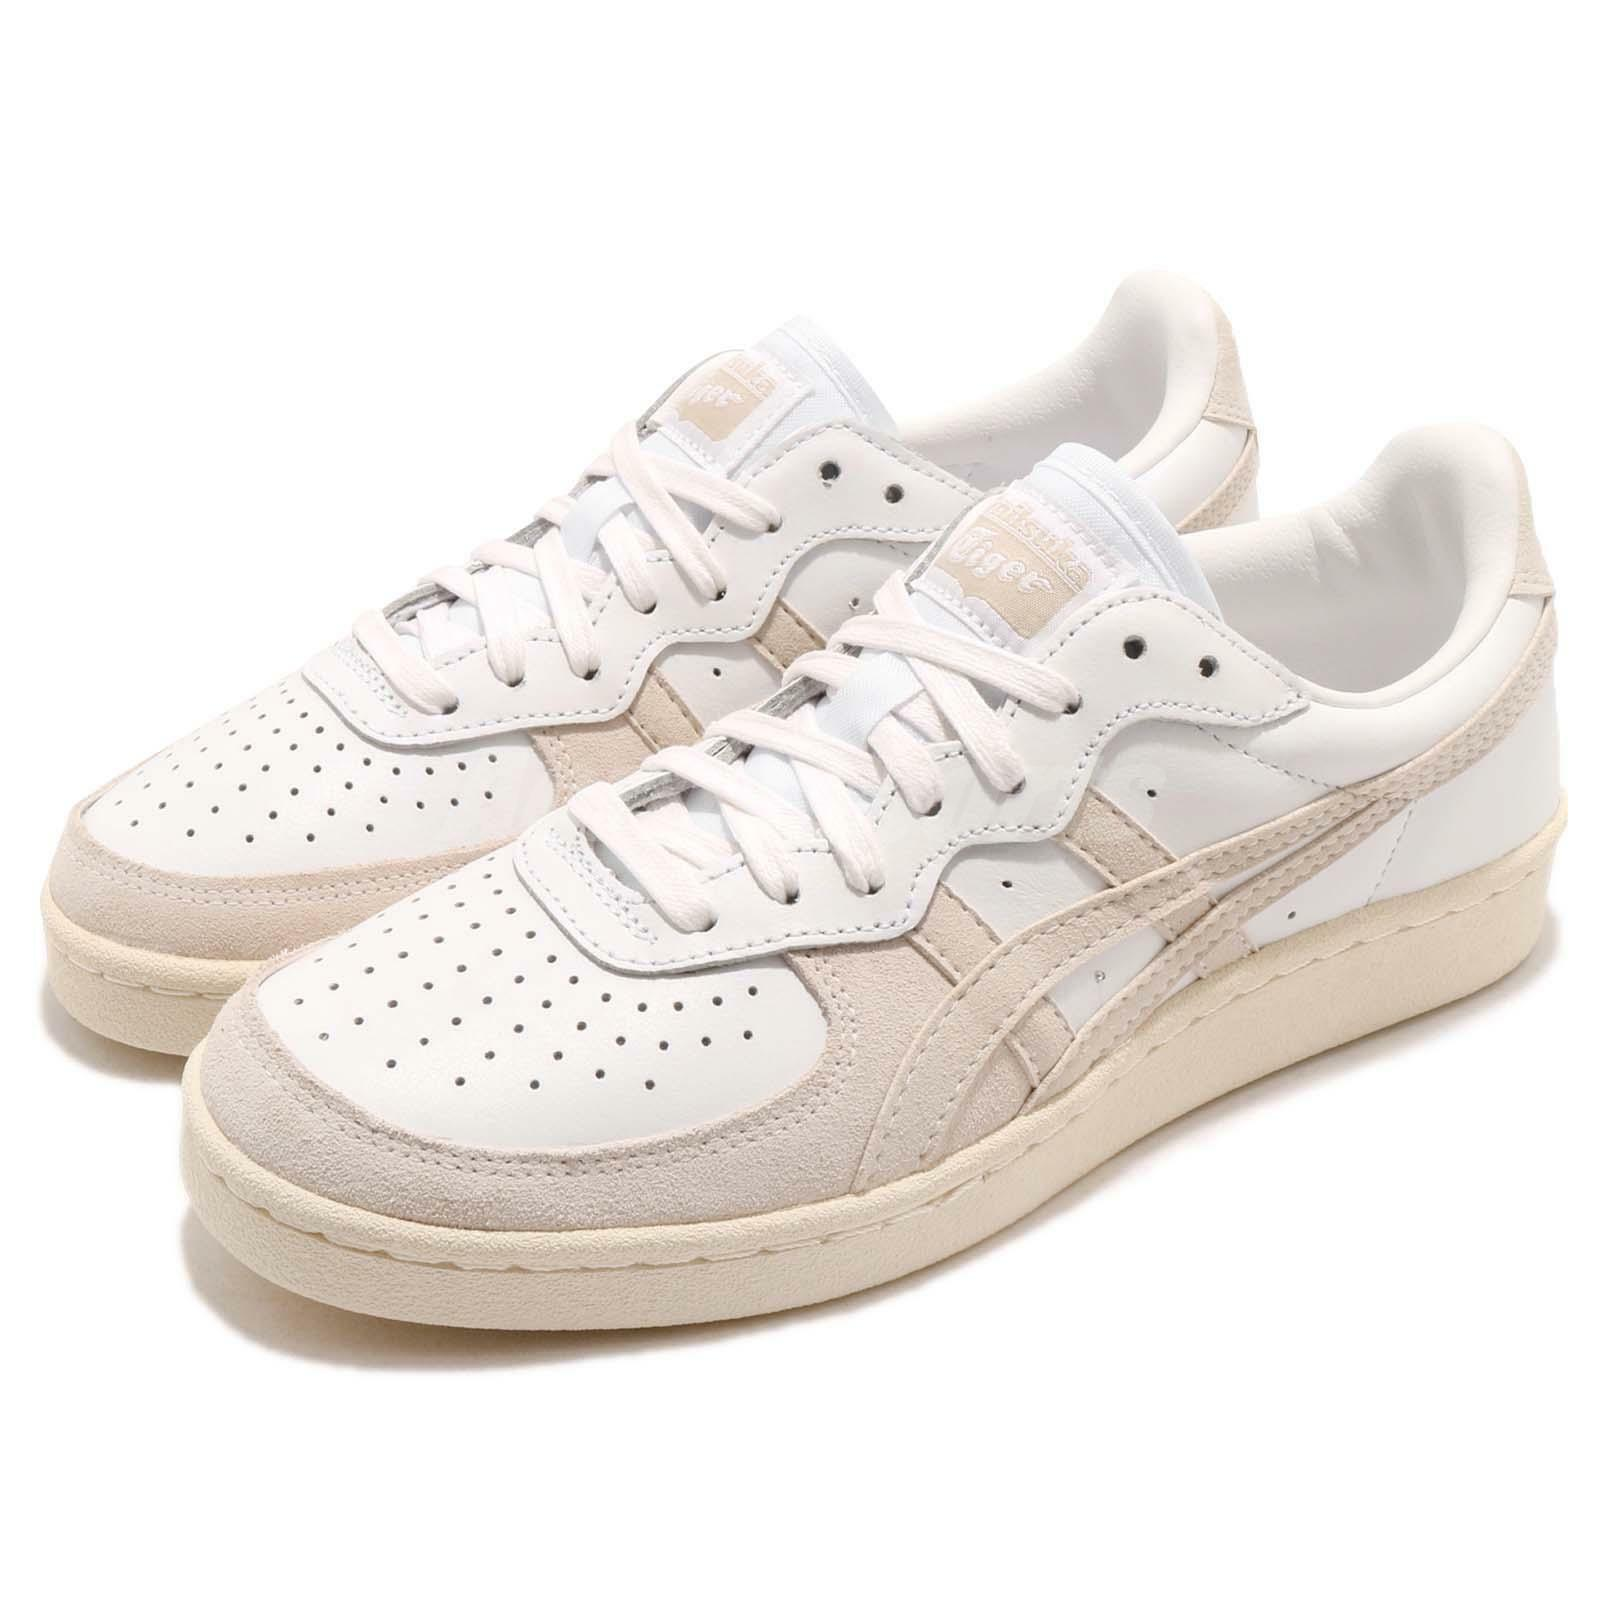 Asics Onitsuka Tiger GSM White Beige Men Women Casual shoes Sneakers D6H1L-0101